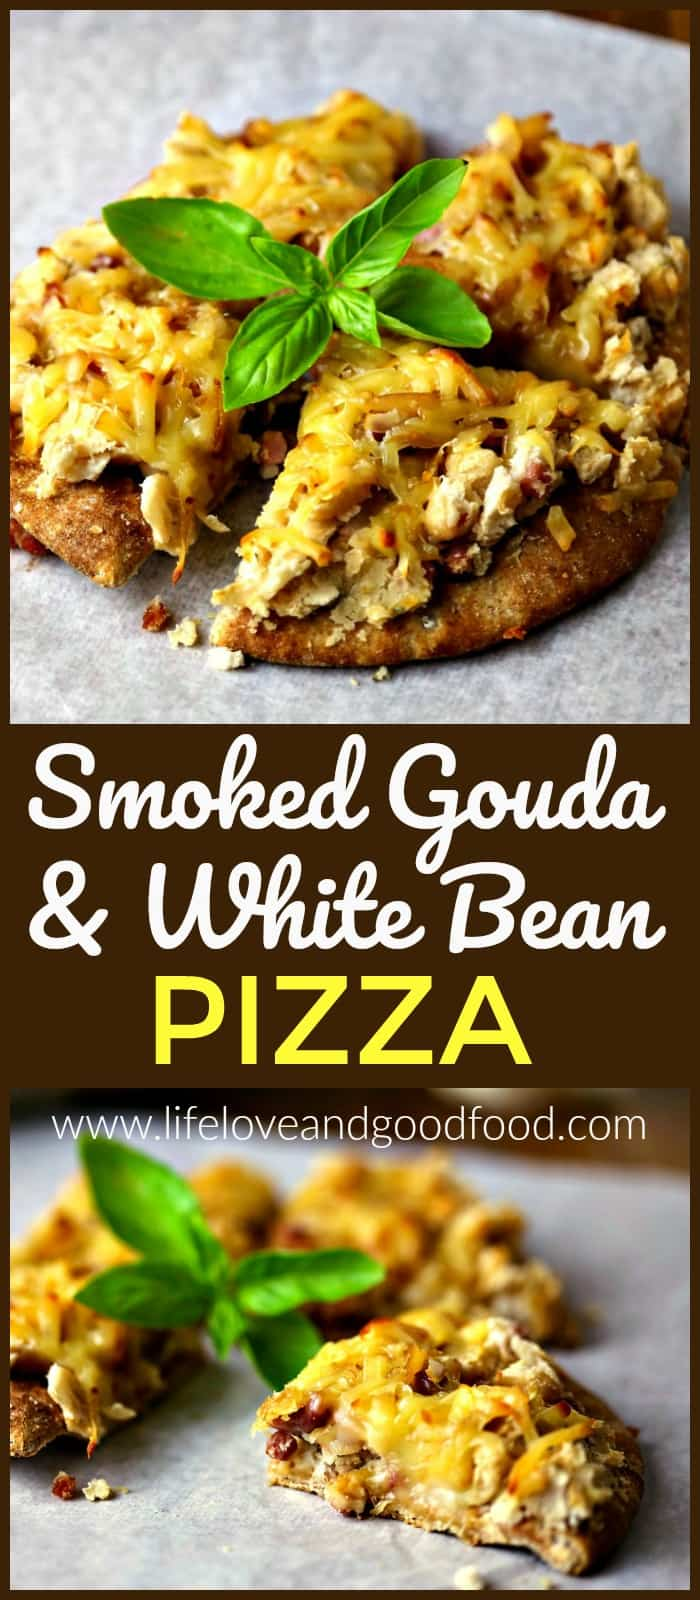 SStep outside of your pepperoni pizza comfort zone with a flavorful pie of Smoked Gouda and White Beans on a pita bread crust! #pizza #gouda